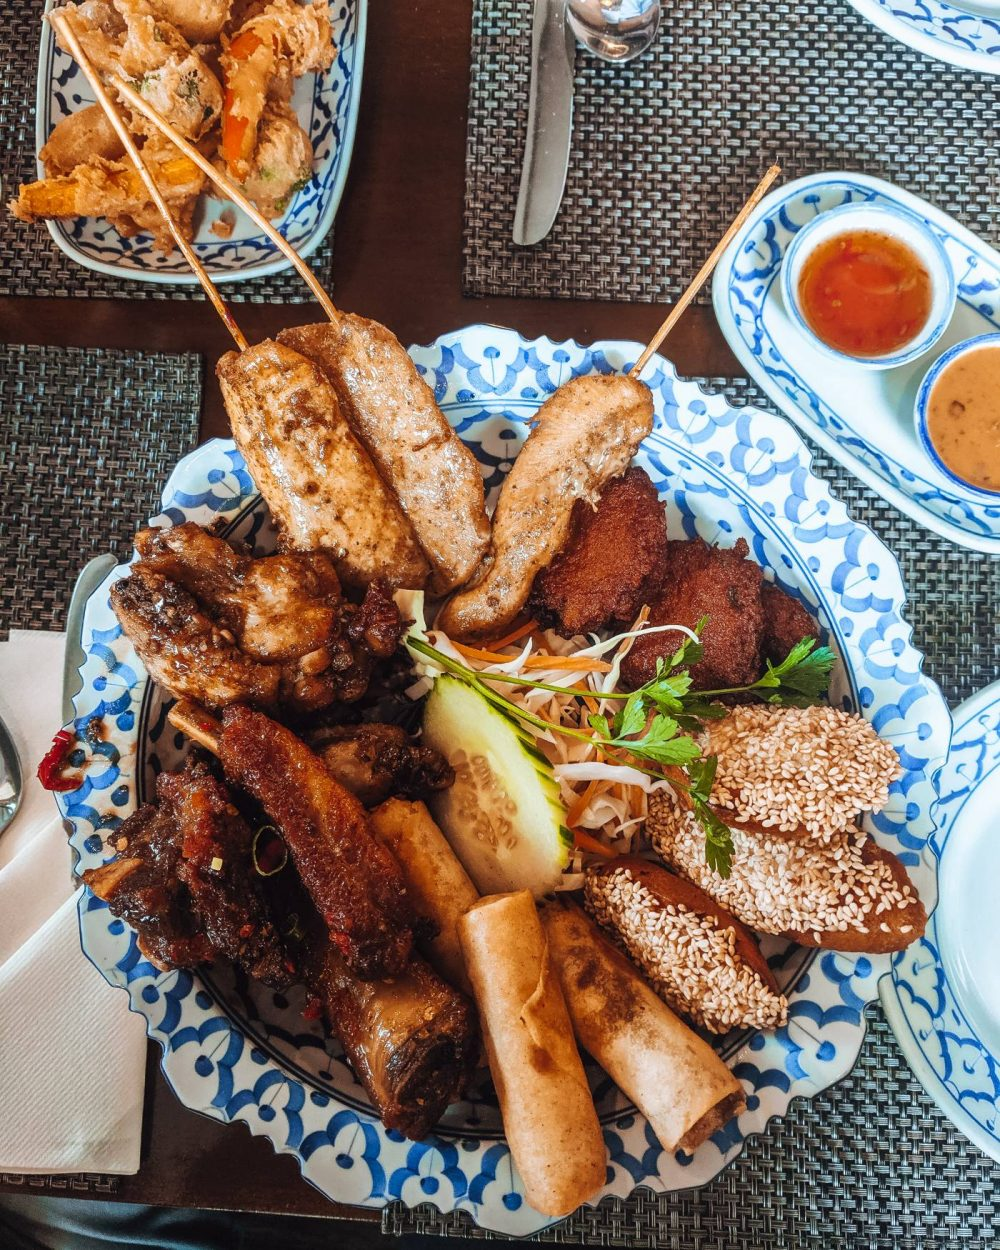 Pin Petch Thai Restaurant's sharing platter